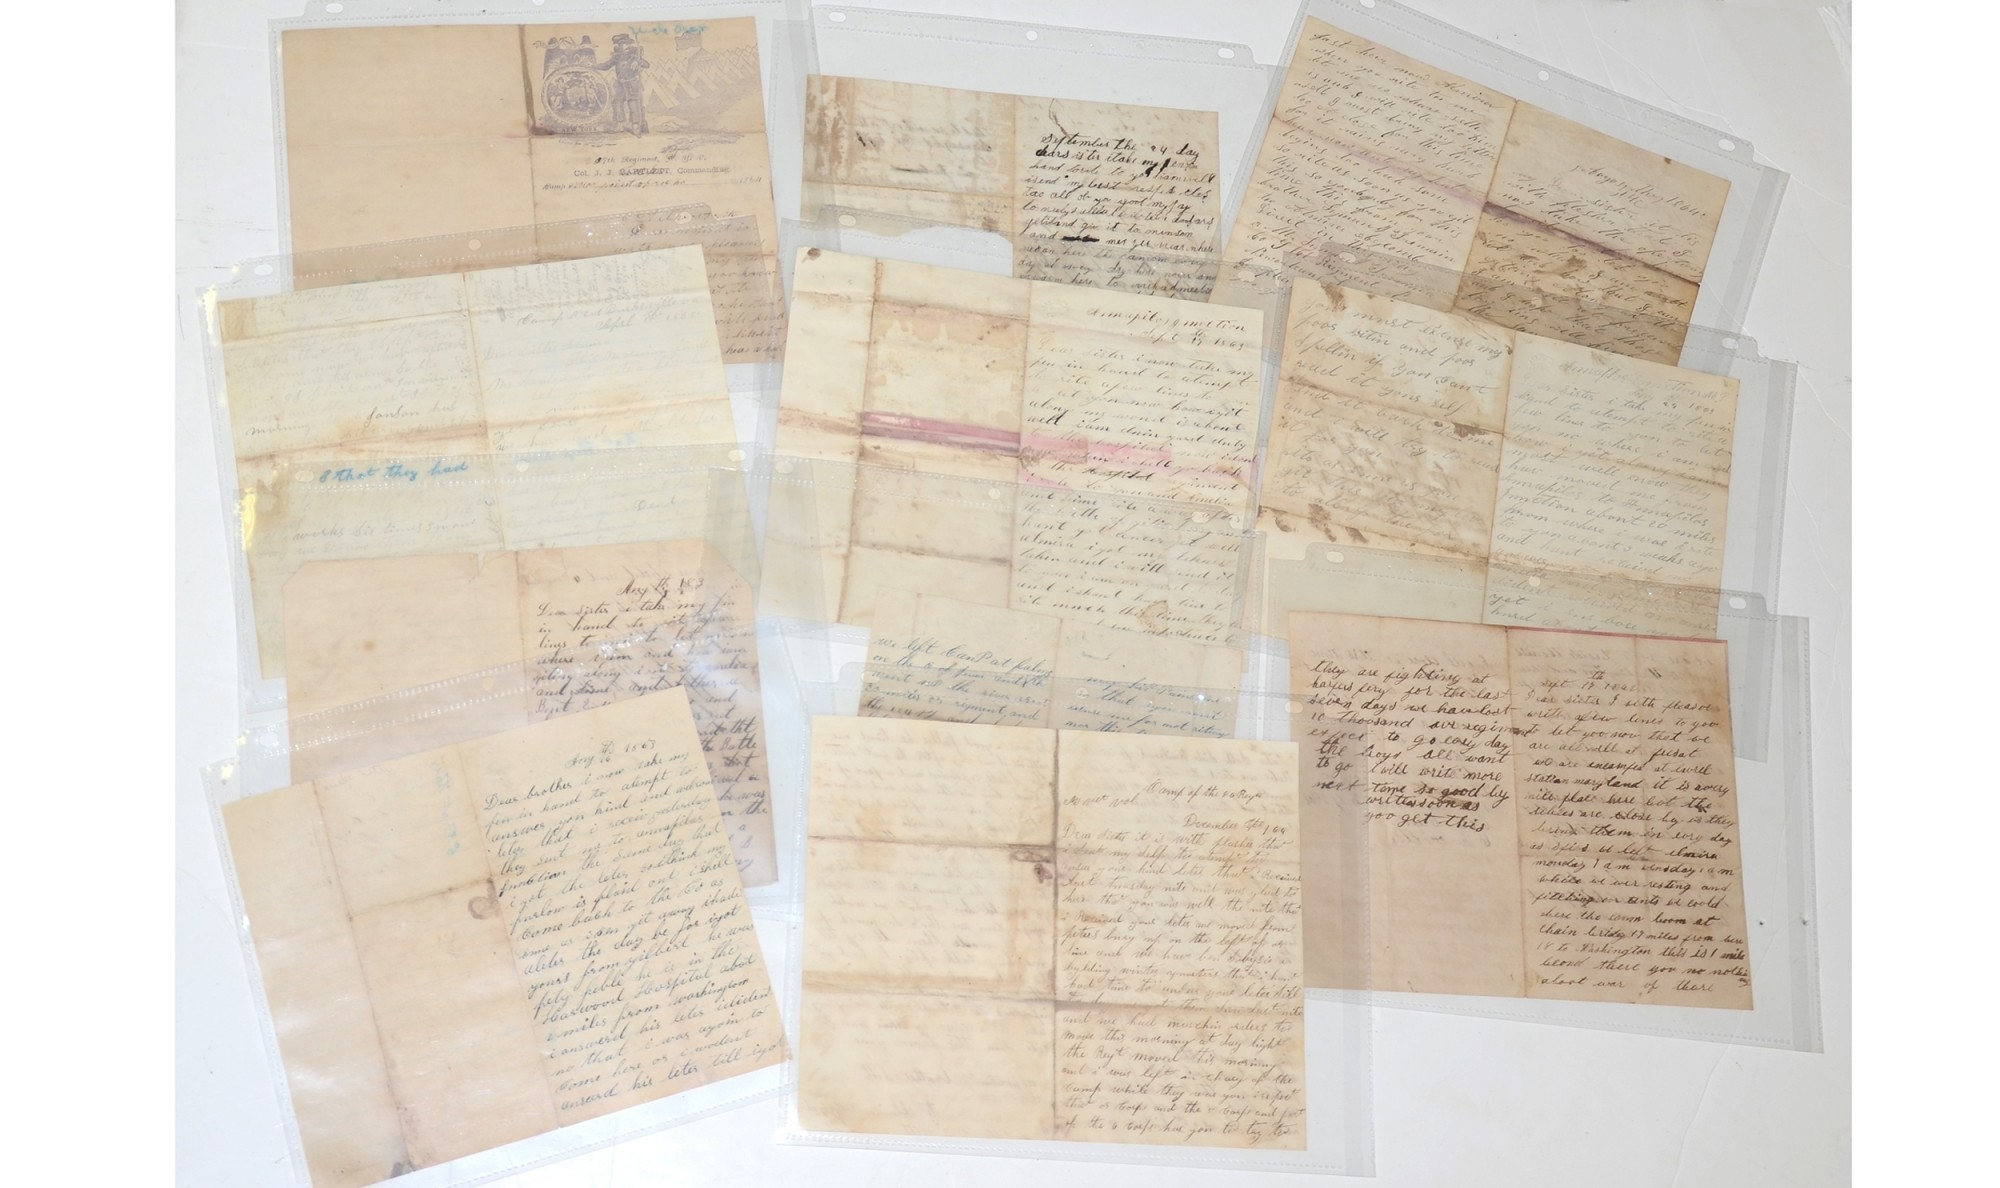 SOLDIER LETTER GROUPING – CORRESPONDENCE OF FIVE BROTHERS OF THE TREMAIN FAMILY OF LINDLEY, NY, FOUR OF WHOM WERE WOUNDED IN ACTION [GETTYSBURG, 7/2/1863; SABINE CROSS ROADS; 4/8/1864, RESACA, GA; 5/15/1864, PETERSBURG, 4/2/1865]